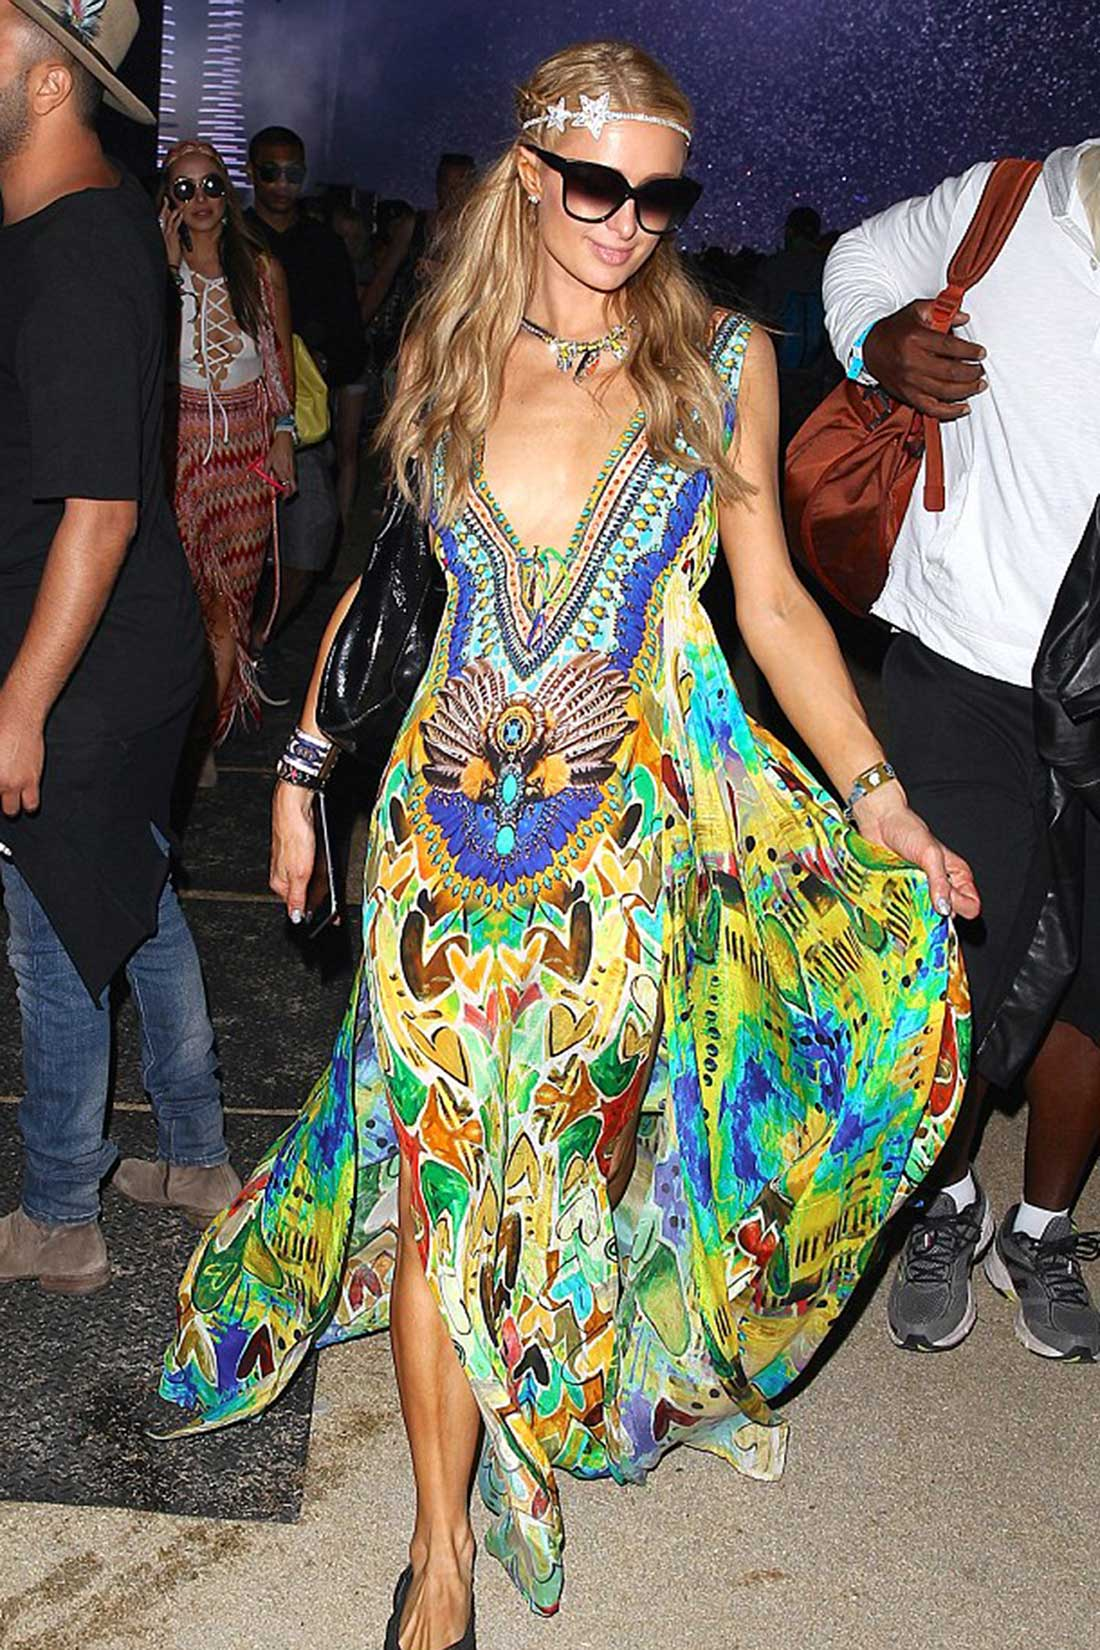 paris-hilton-at-coachella-2016-wearing-shahida-parides-dress